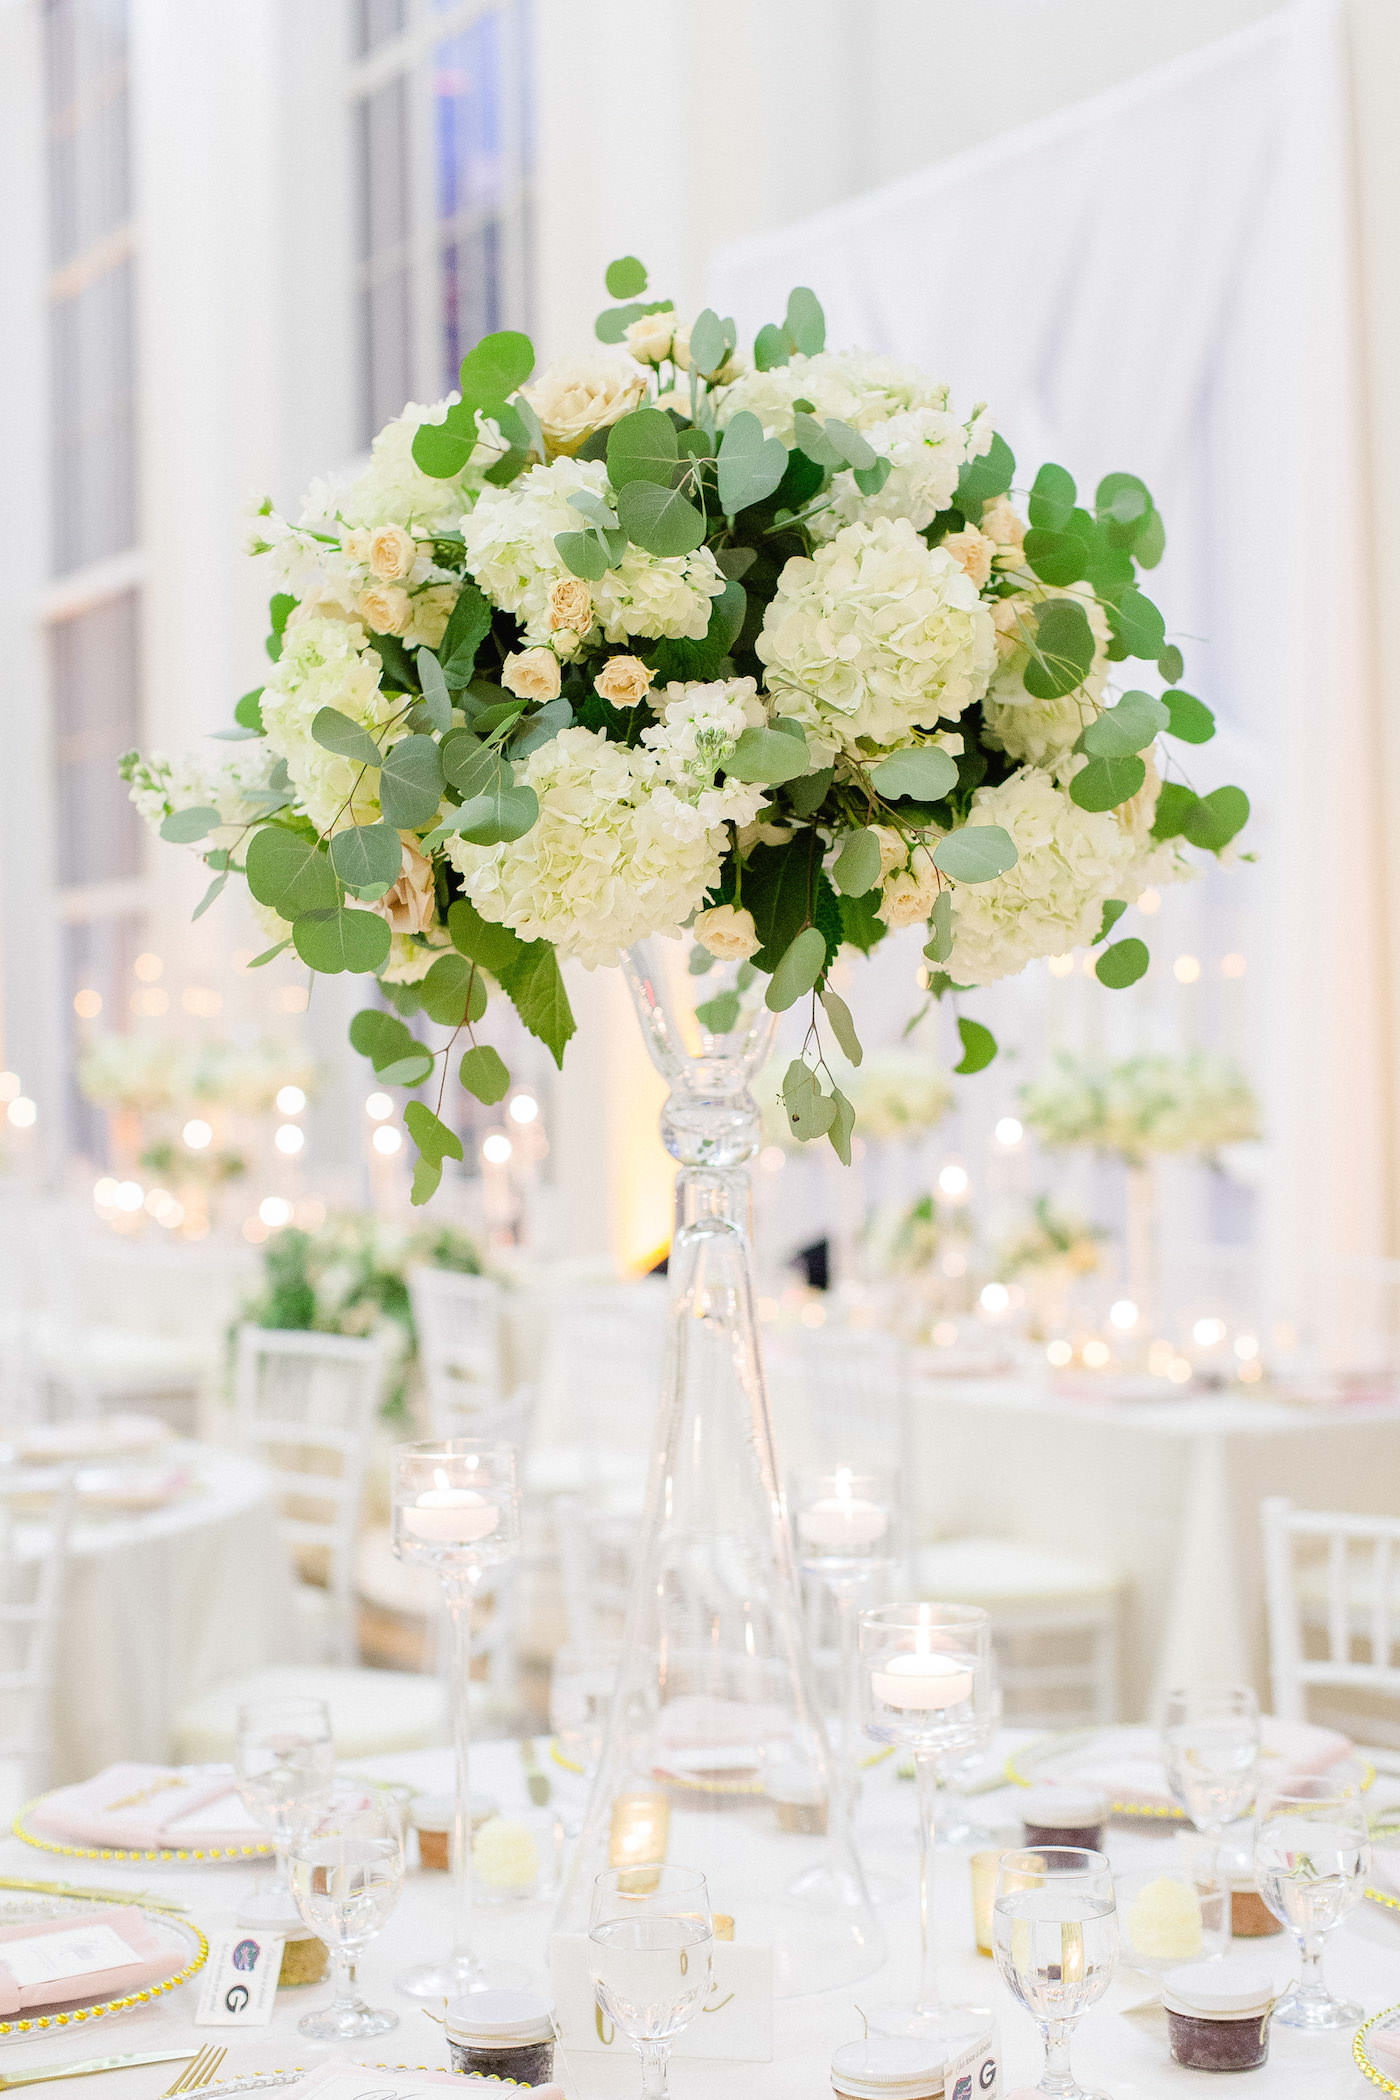 Classic Wedding Reception and Decor, White Criss Cross Draping and Custom Monogram Gobo Light as Backdrop for Sweetheart Table, Lush Greenery Eucalyptus, Ivory Hydrangeas, Blush Pink Roses on Crystal Tall Vase, Ivory Linens | Downtown Tampa Wedding Venue The Vault | Florida Wedding Planner Breezin' Weddings